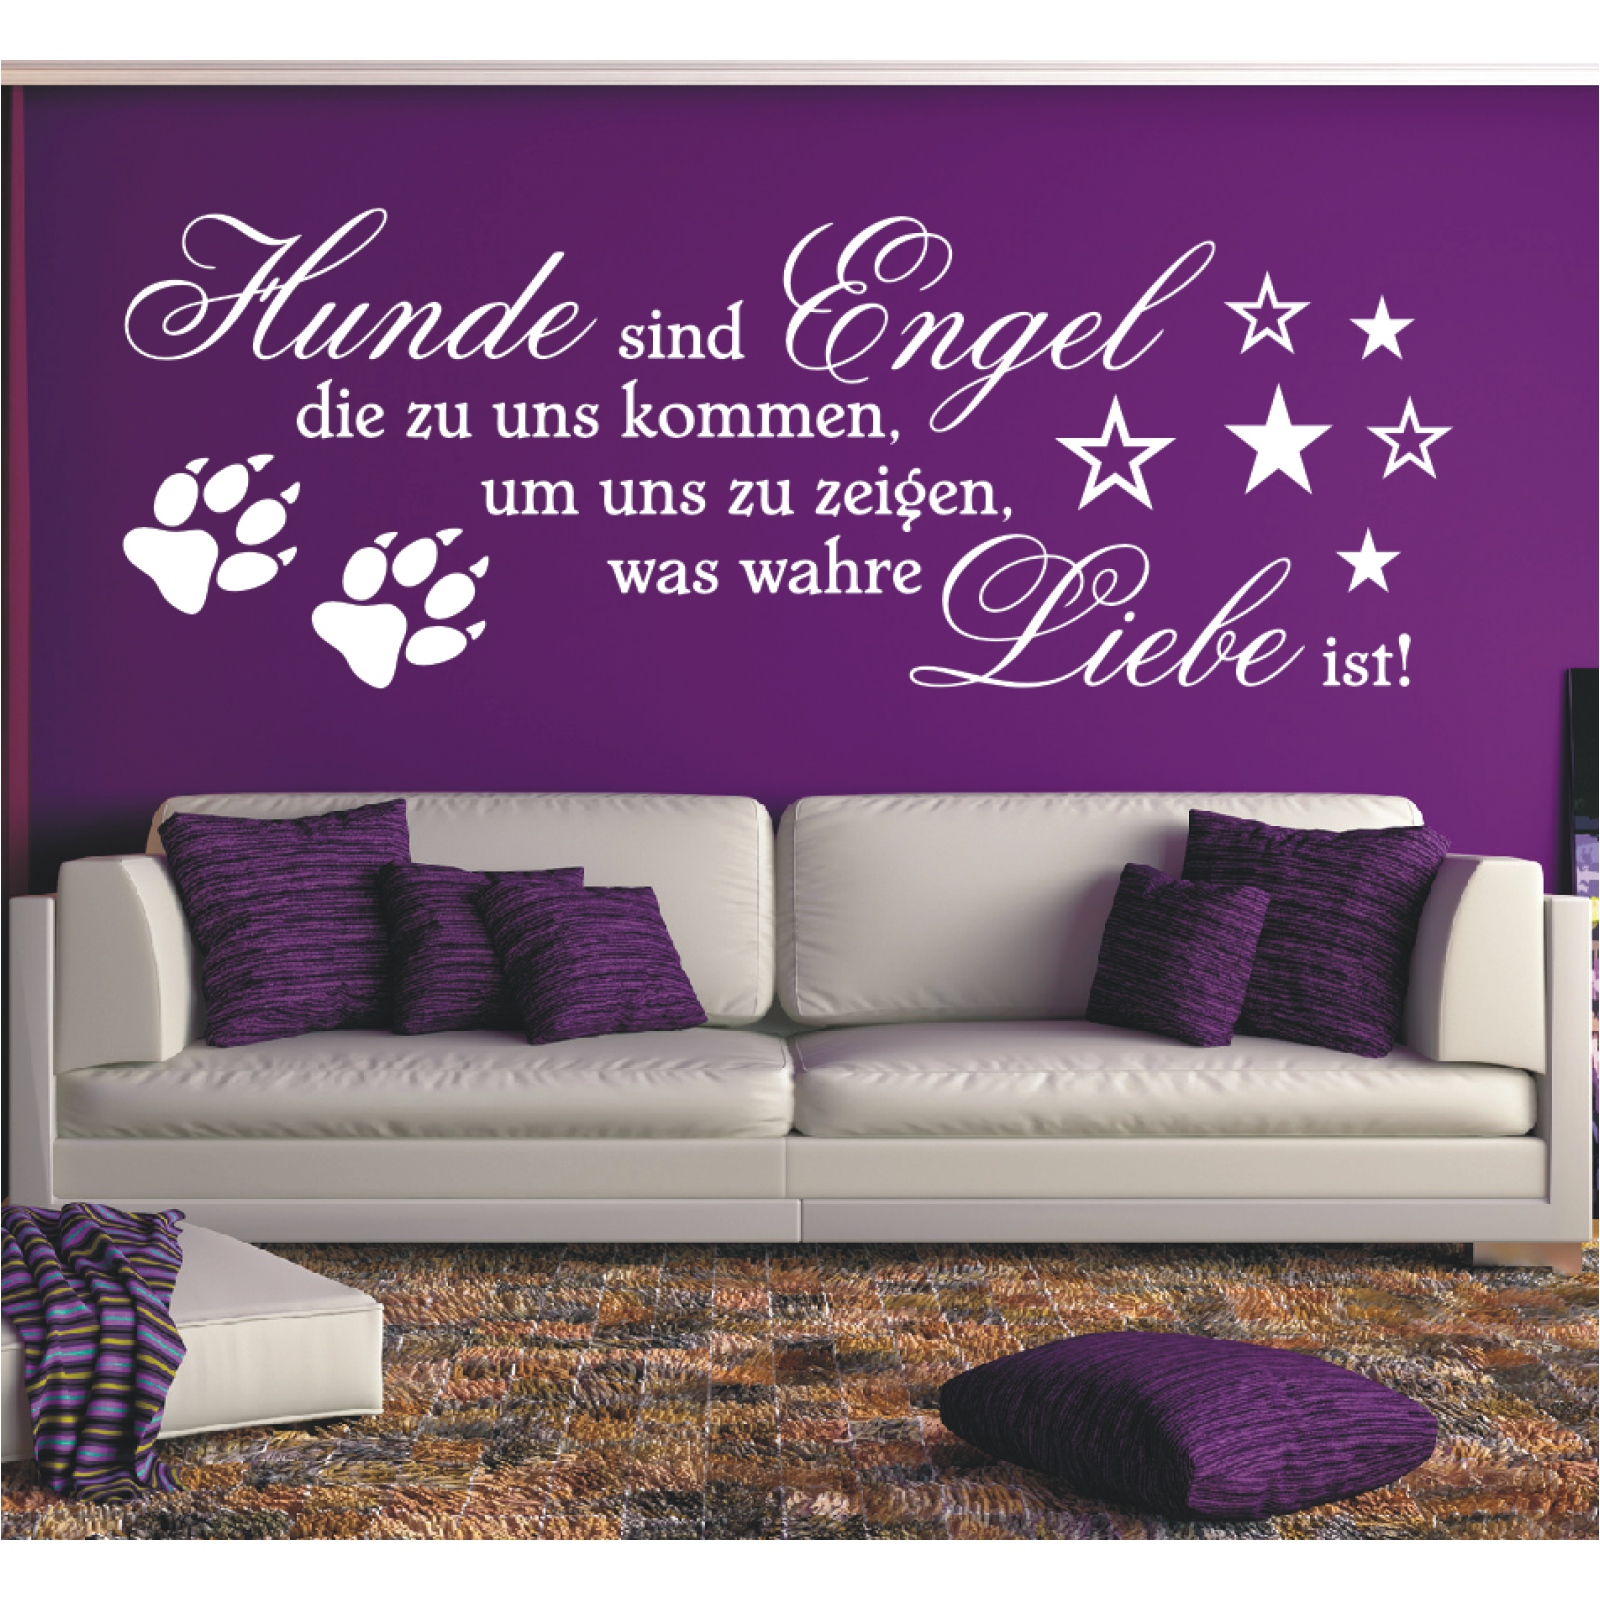 wandtattoo spruch hunde engel wahre liebe sticker wandaufkleber wandsticker 2 ebay. Black Bedroom Furniture Sets. Home Design Ideas